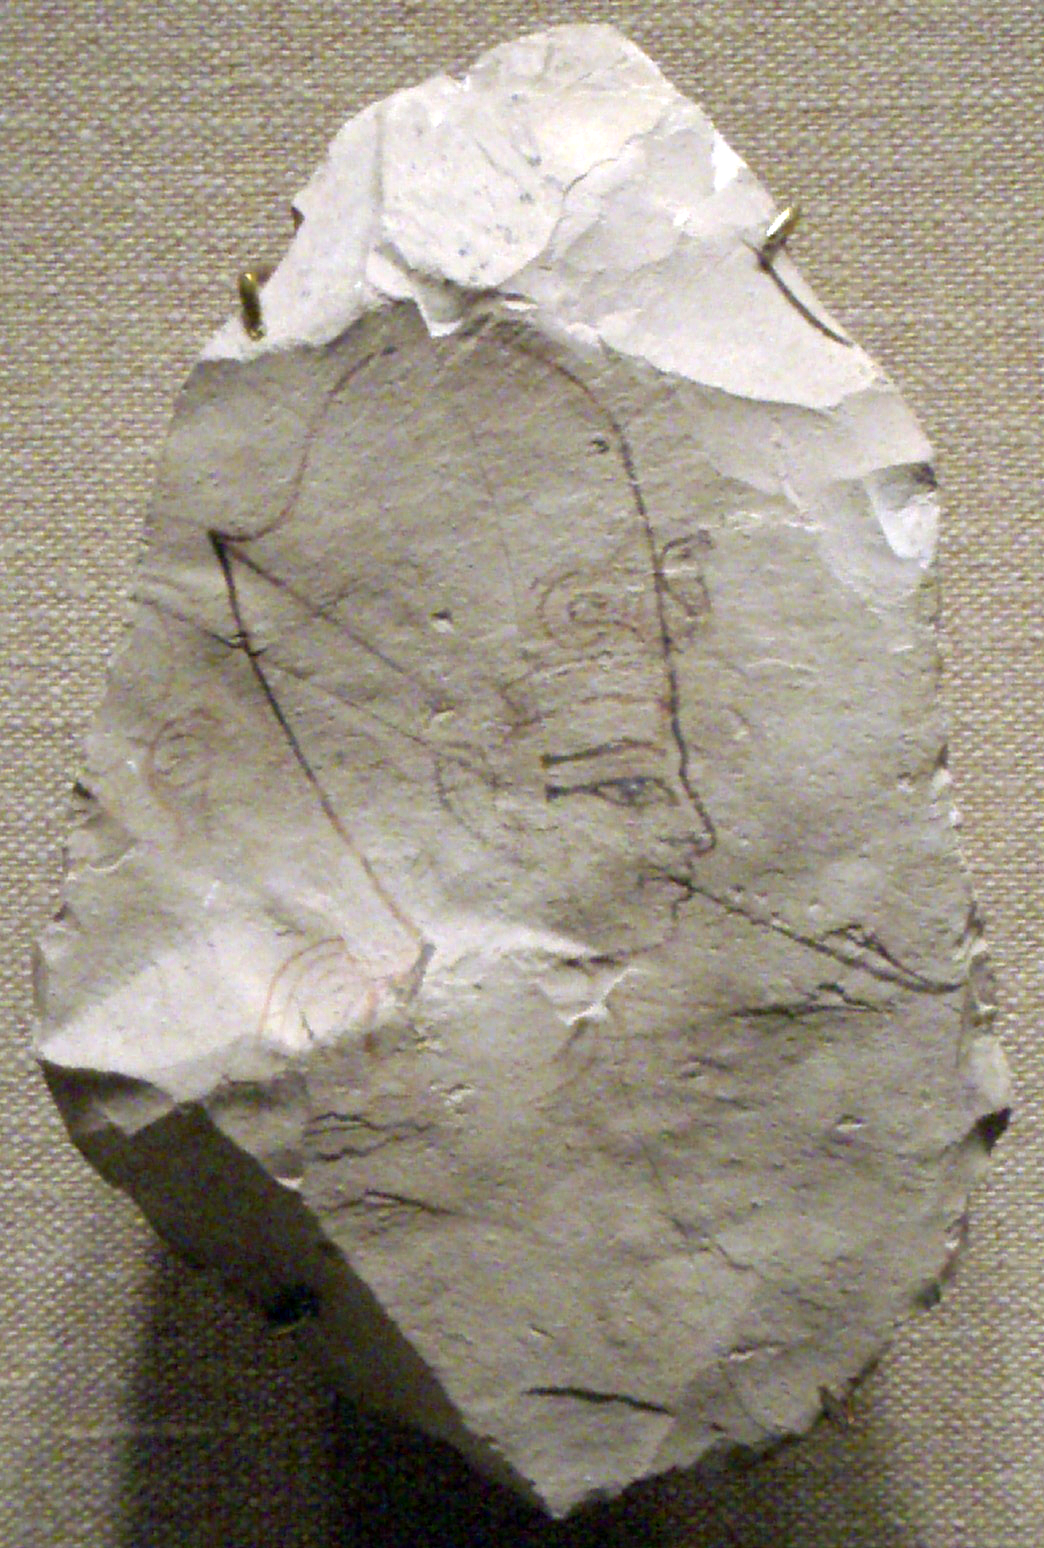 http://upload.wikimedia.org/wikipedia/commons/5/51/Ostracon03-RamessidePeriod_MetropolitanMuseum.png